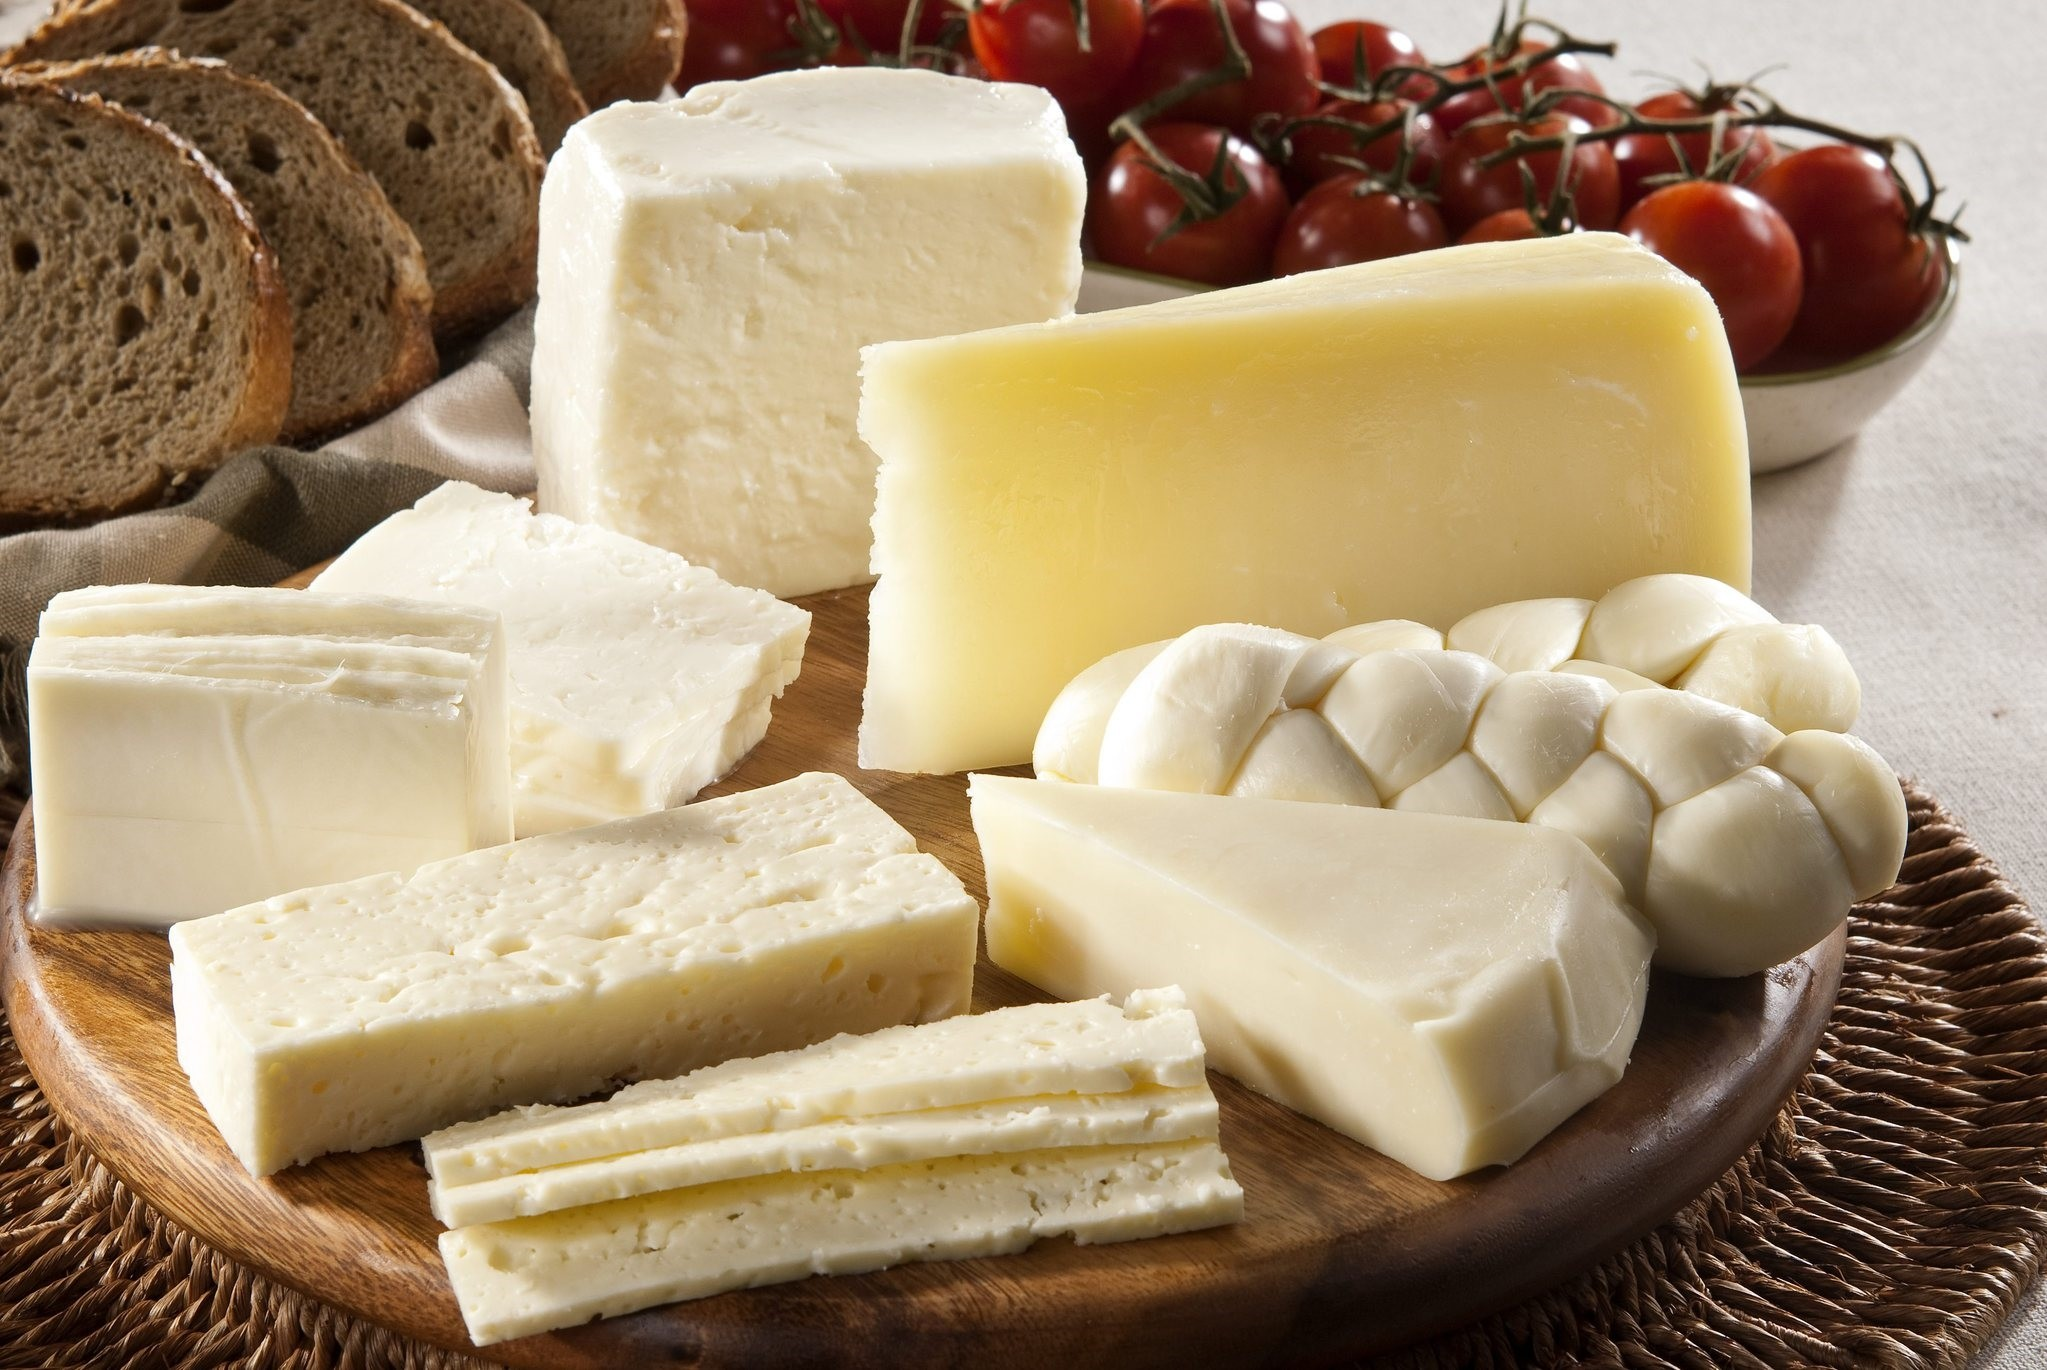 Cheese is rich in saturated fats which are the main components of brain cells.